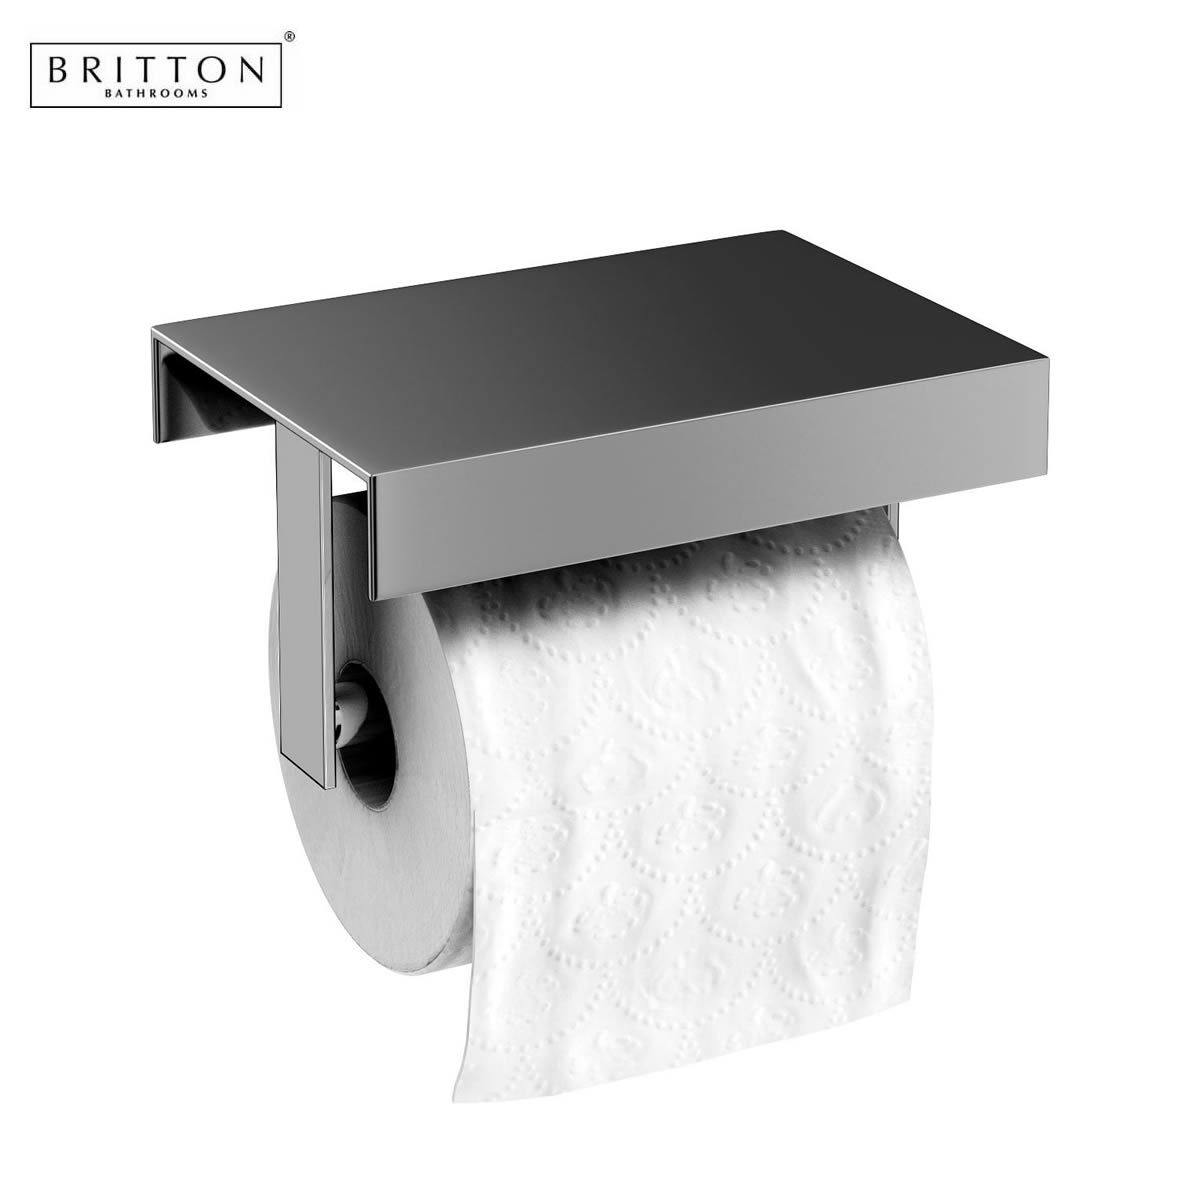 Britton Stainless Steel Toilet Roll Holder UK Bathrooms